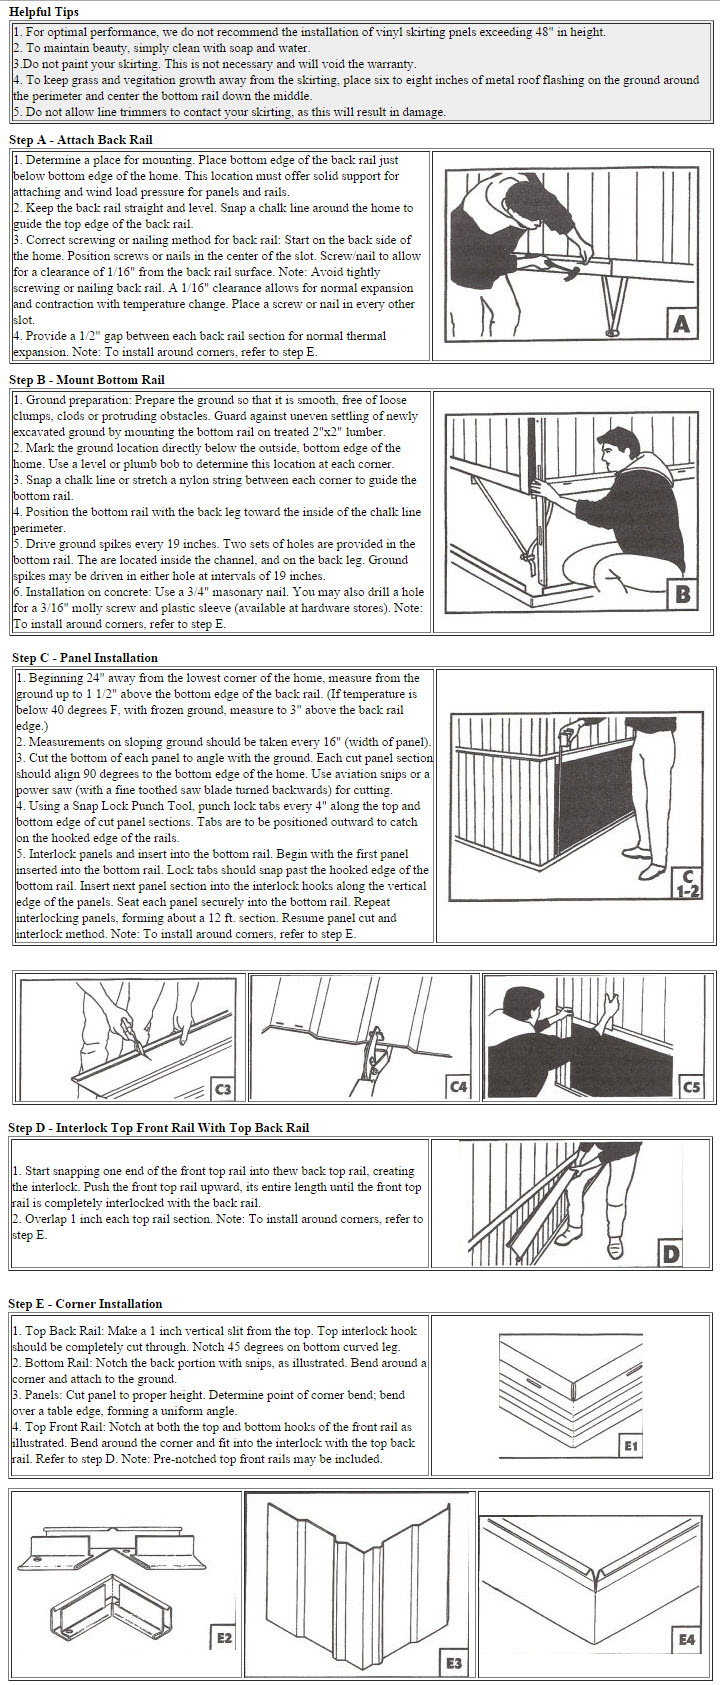 Mobile Home Skirting - A Complete Guide To Mobile Home ... on blinds for mobile homes, tubs for mobile homes, fascia for mobile homes, heating for mobile homes, ceiling for mobile homes, trim for mobile homes, roofing for mobile homes, tables for mobile homes, frames for mobile homes, a/c for mobile homes, shingles for mobile homes, gutters for mobile homes, walls for mobile homes, construction for mobile homes, fences for mobile homes, carports for mobile homes, laminate flooring for mobile homes, vinyl for mobile homes, steps for mobile homes, porches for mobile homes,